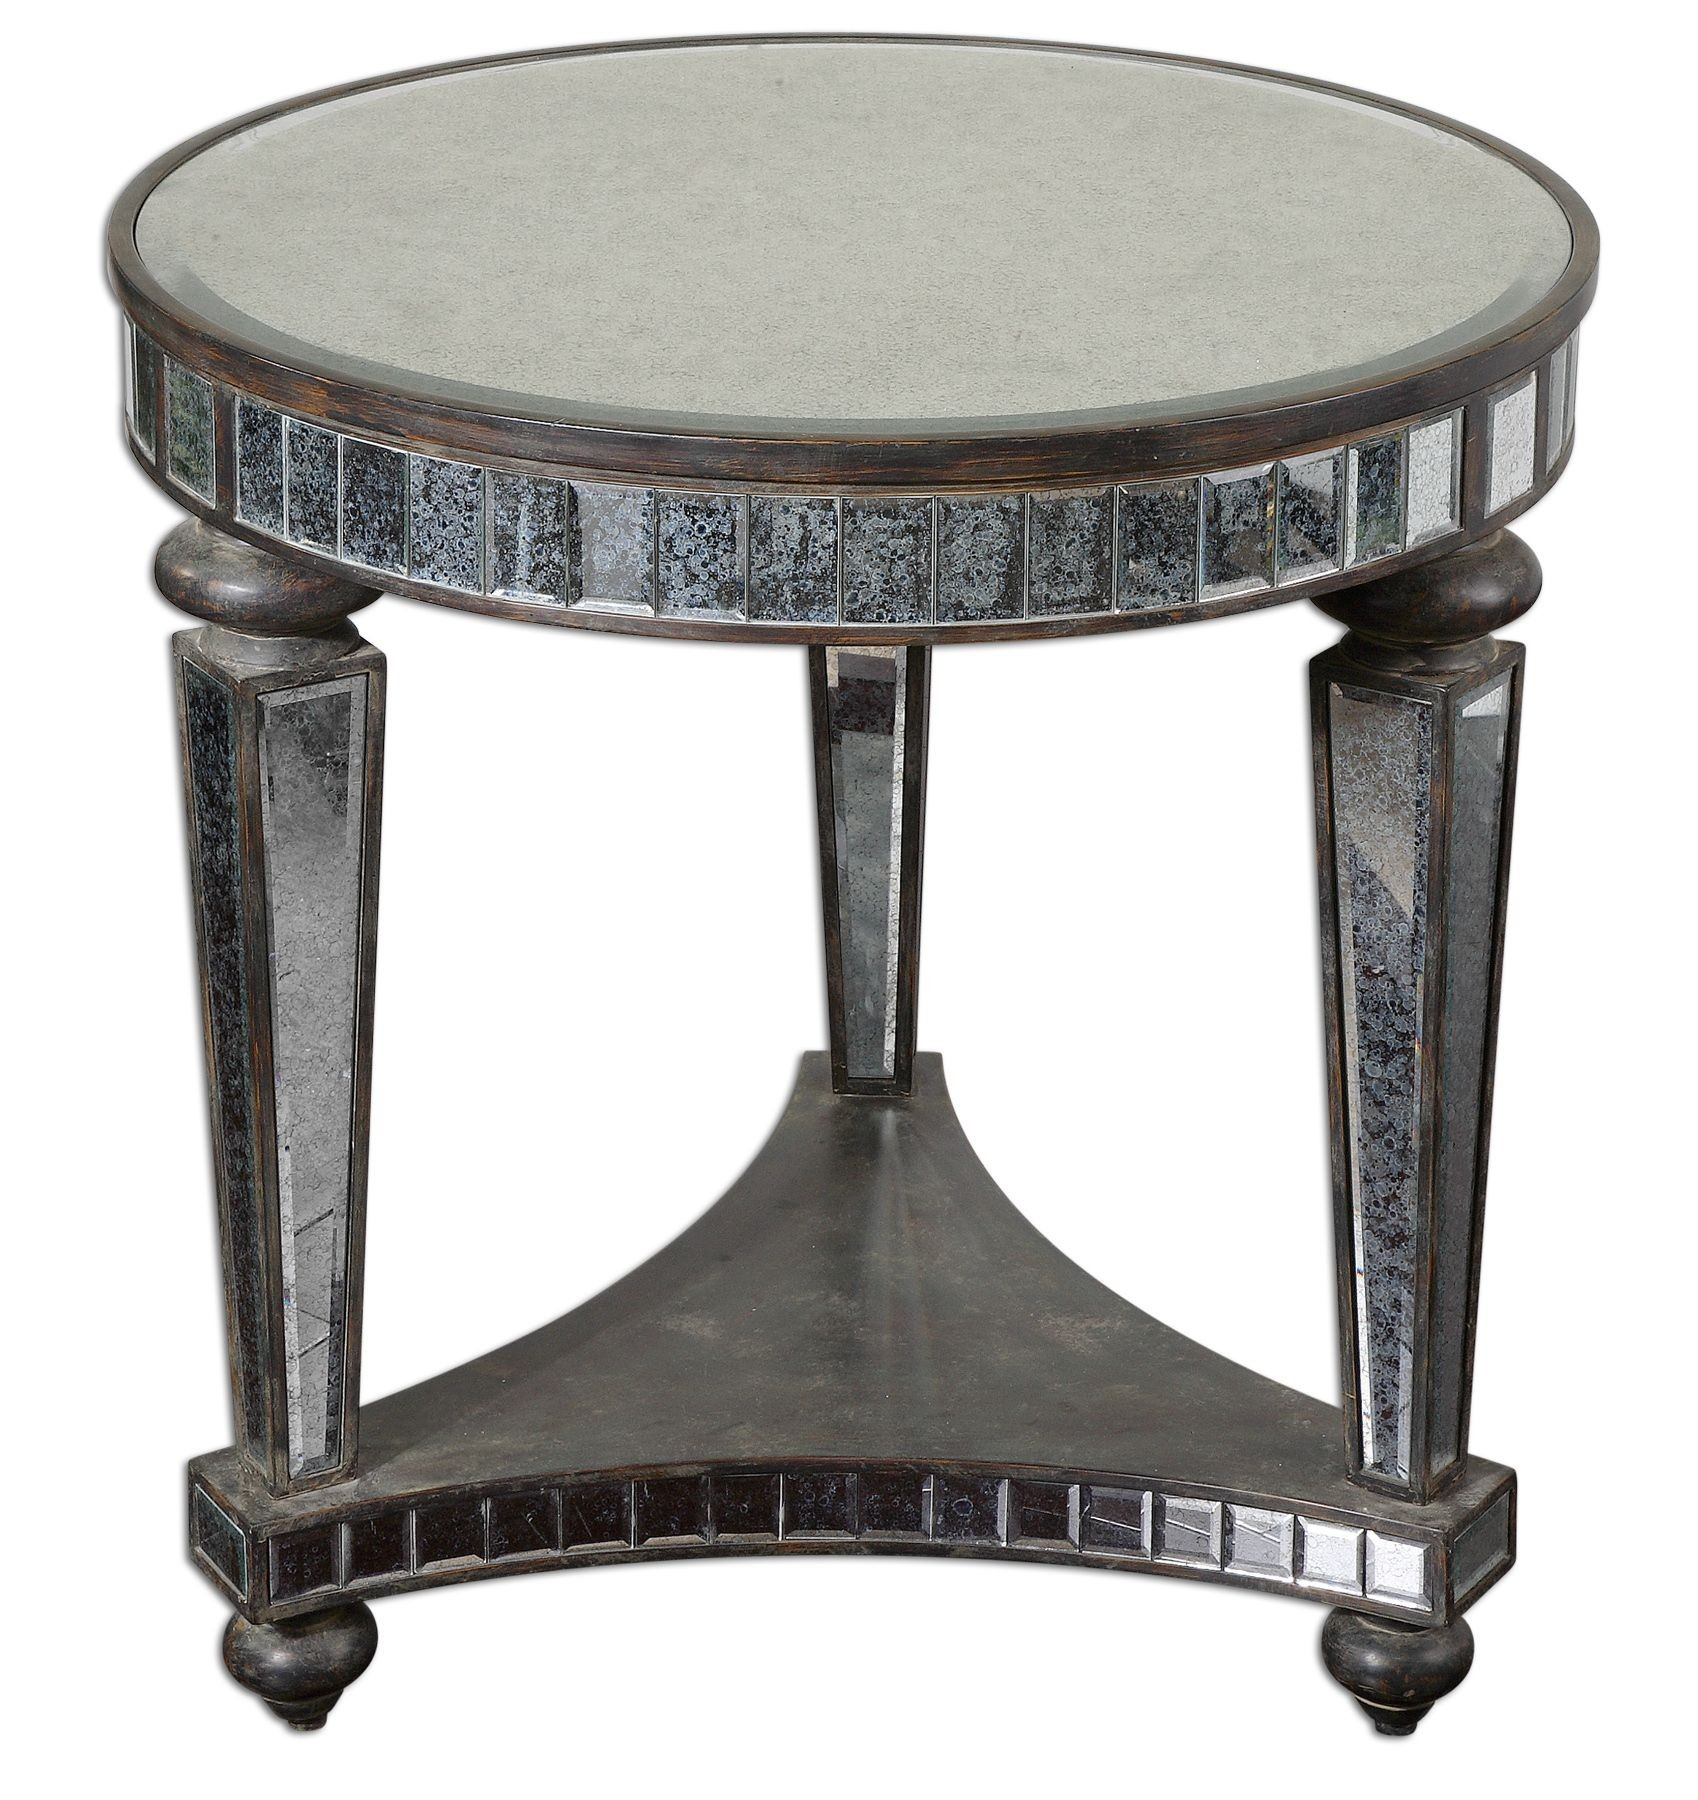 old and vintage round mirrored accent table with shelves square gold antique dining cover designs unfinished small entryway cabinet retro bedroom furniture farmhouse coffee lounge